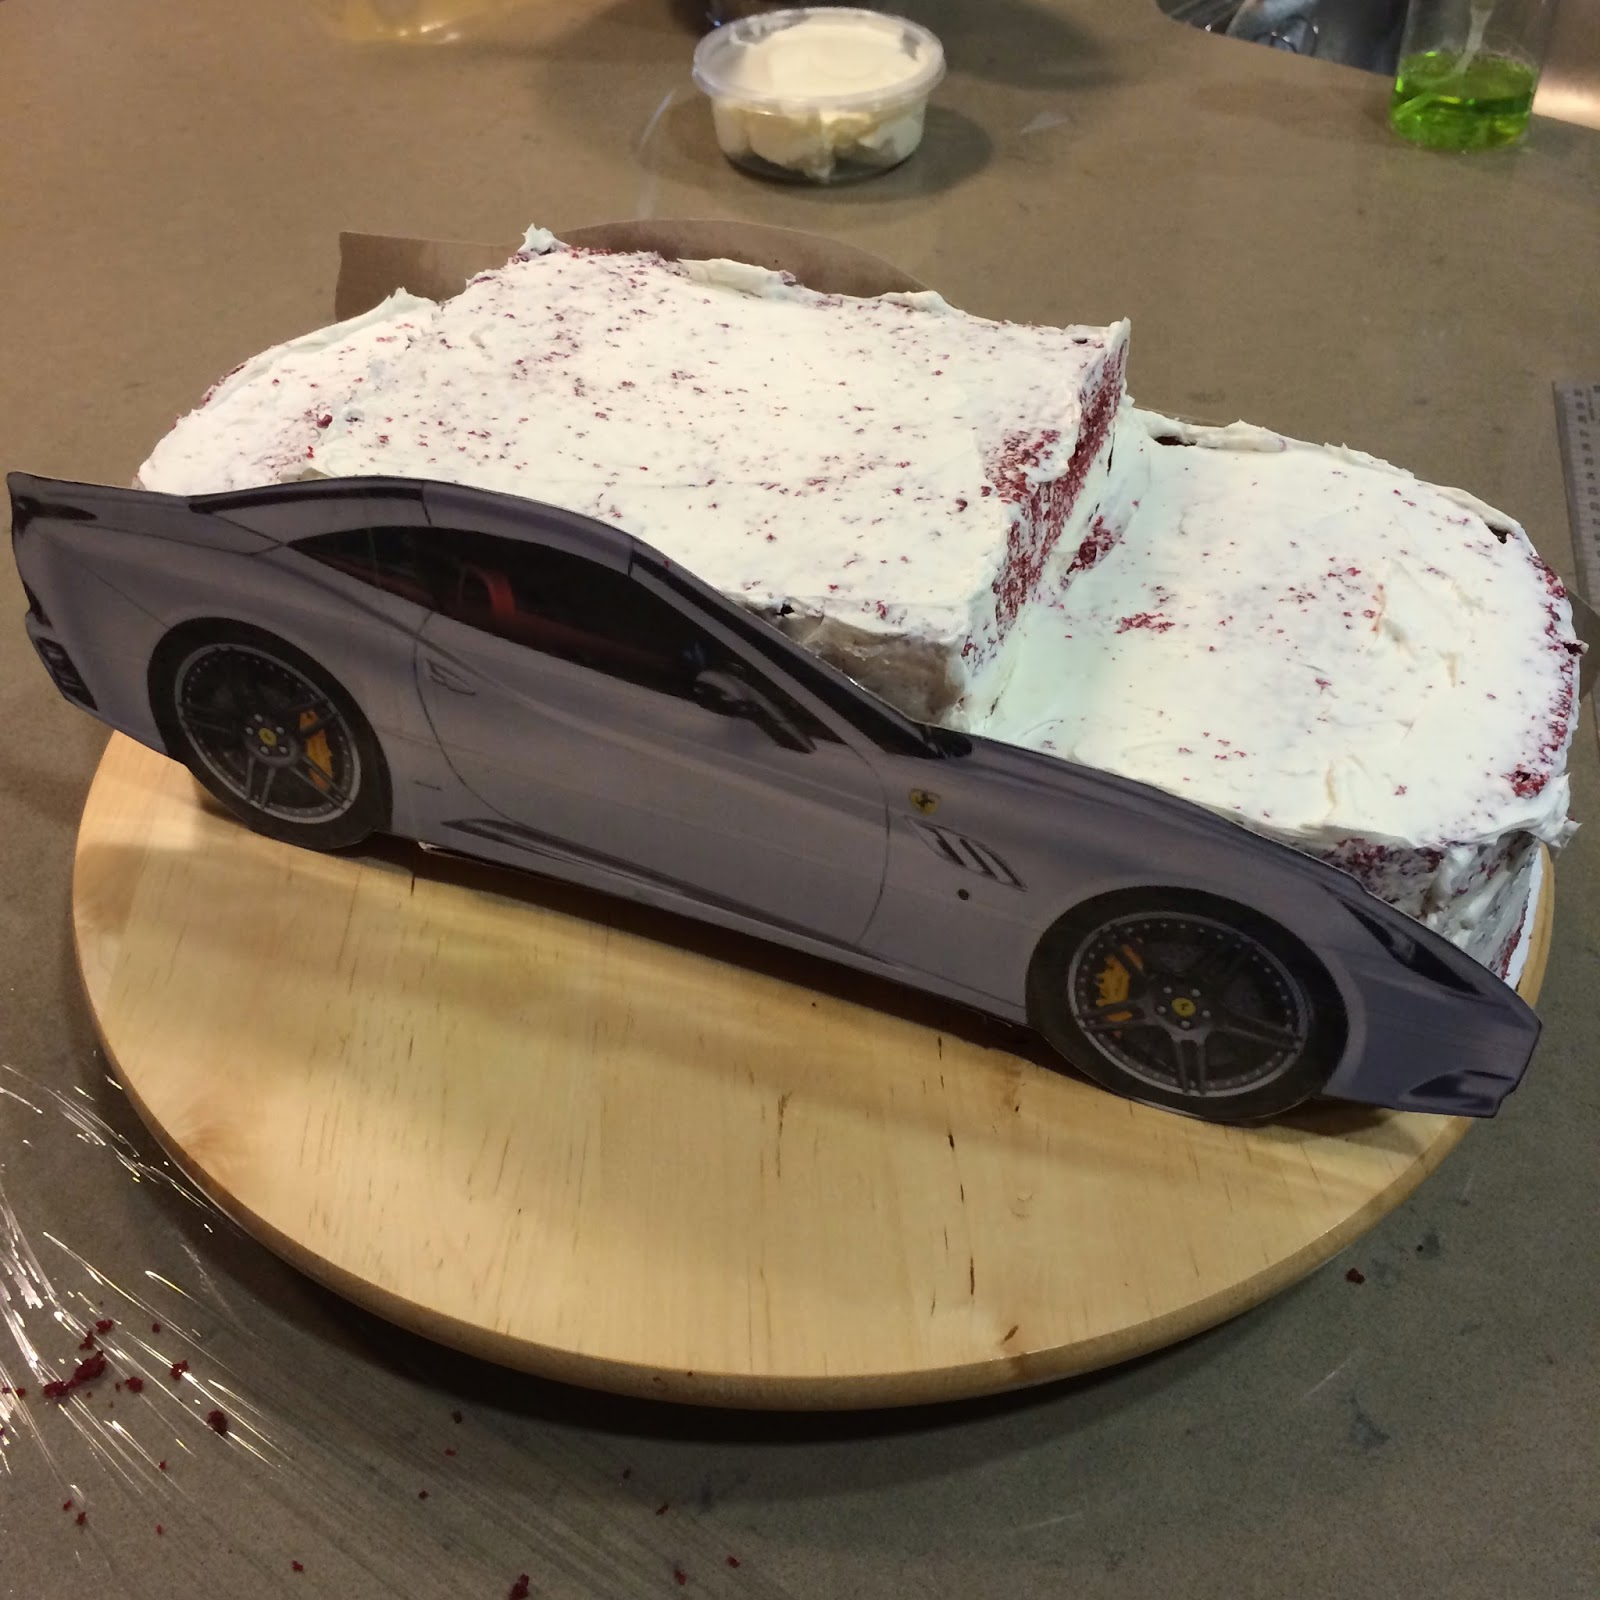 Make Sure You Google A Lot Of Pictures To Help Understand The Curves Car When Yousculpt Cake Trim Little More Than Think